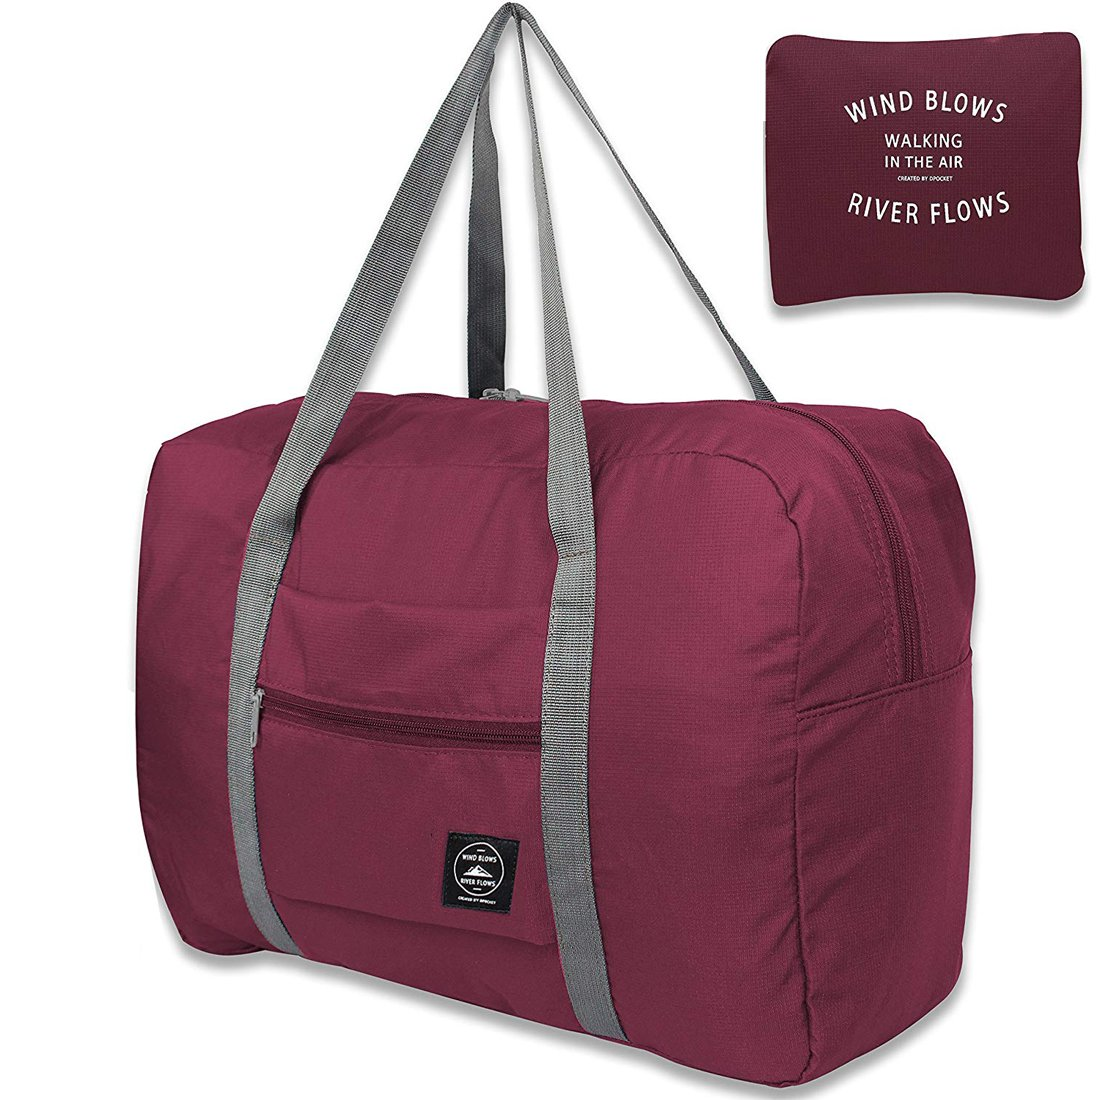 Unova Travel Duffel Packable Light Nylon Water Resistant Gym Tote Weekend Overnight Carry-on Shoulder Bag (Wine Red)